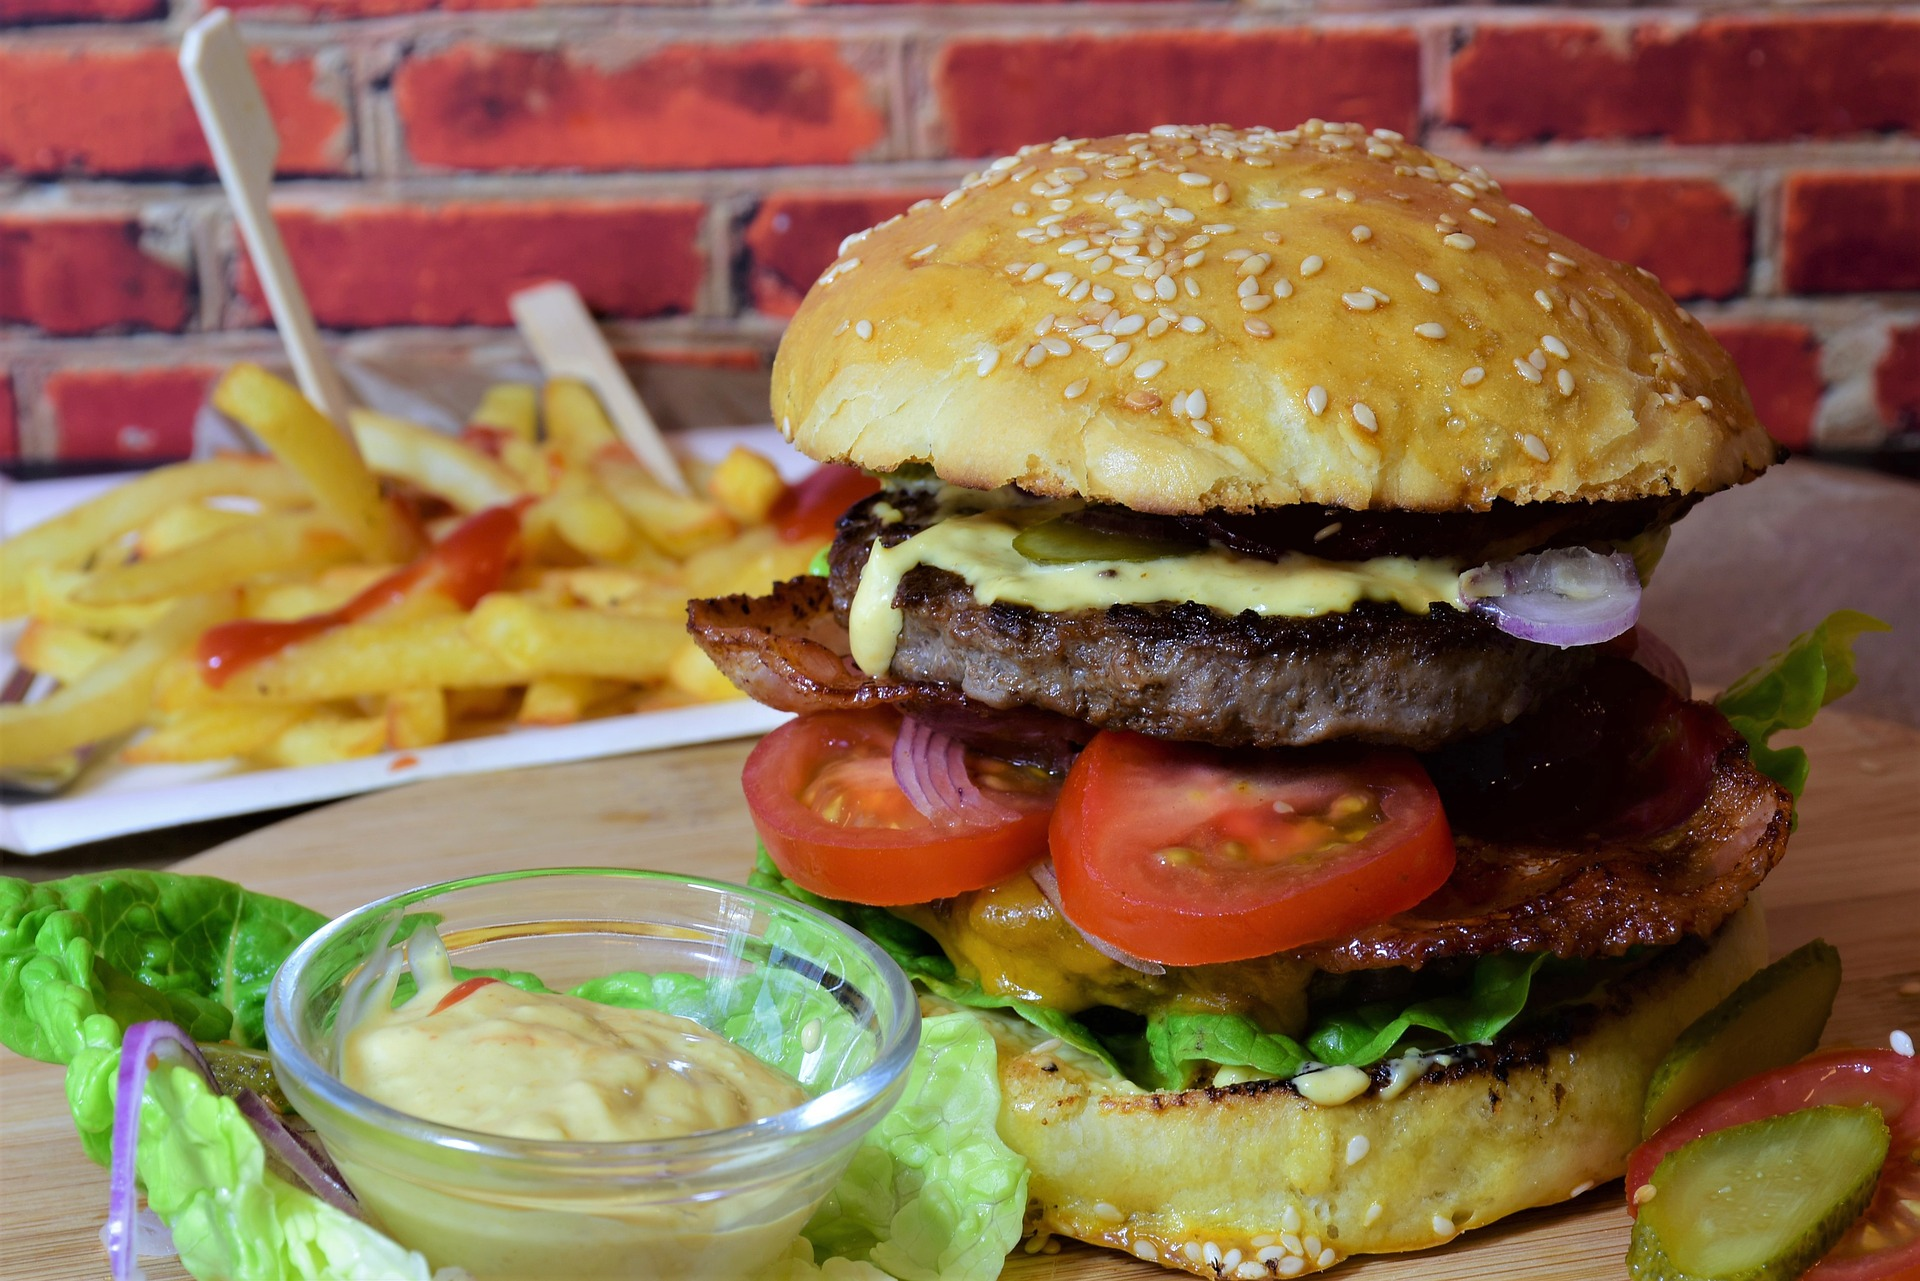 What if Coronary Bypass Patient Keeps Eating Junk Food?